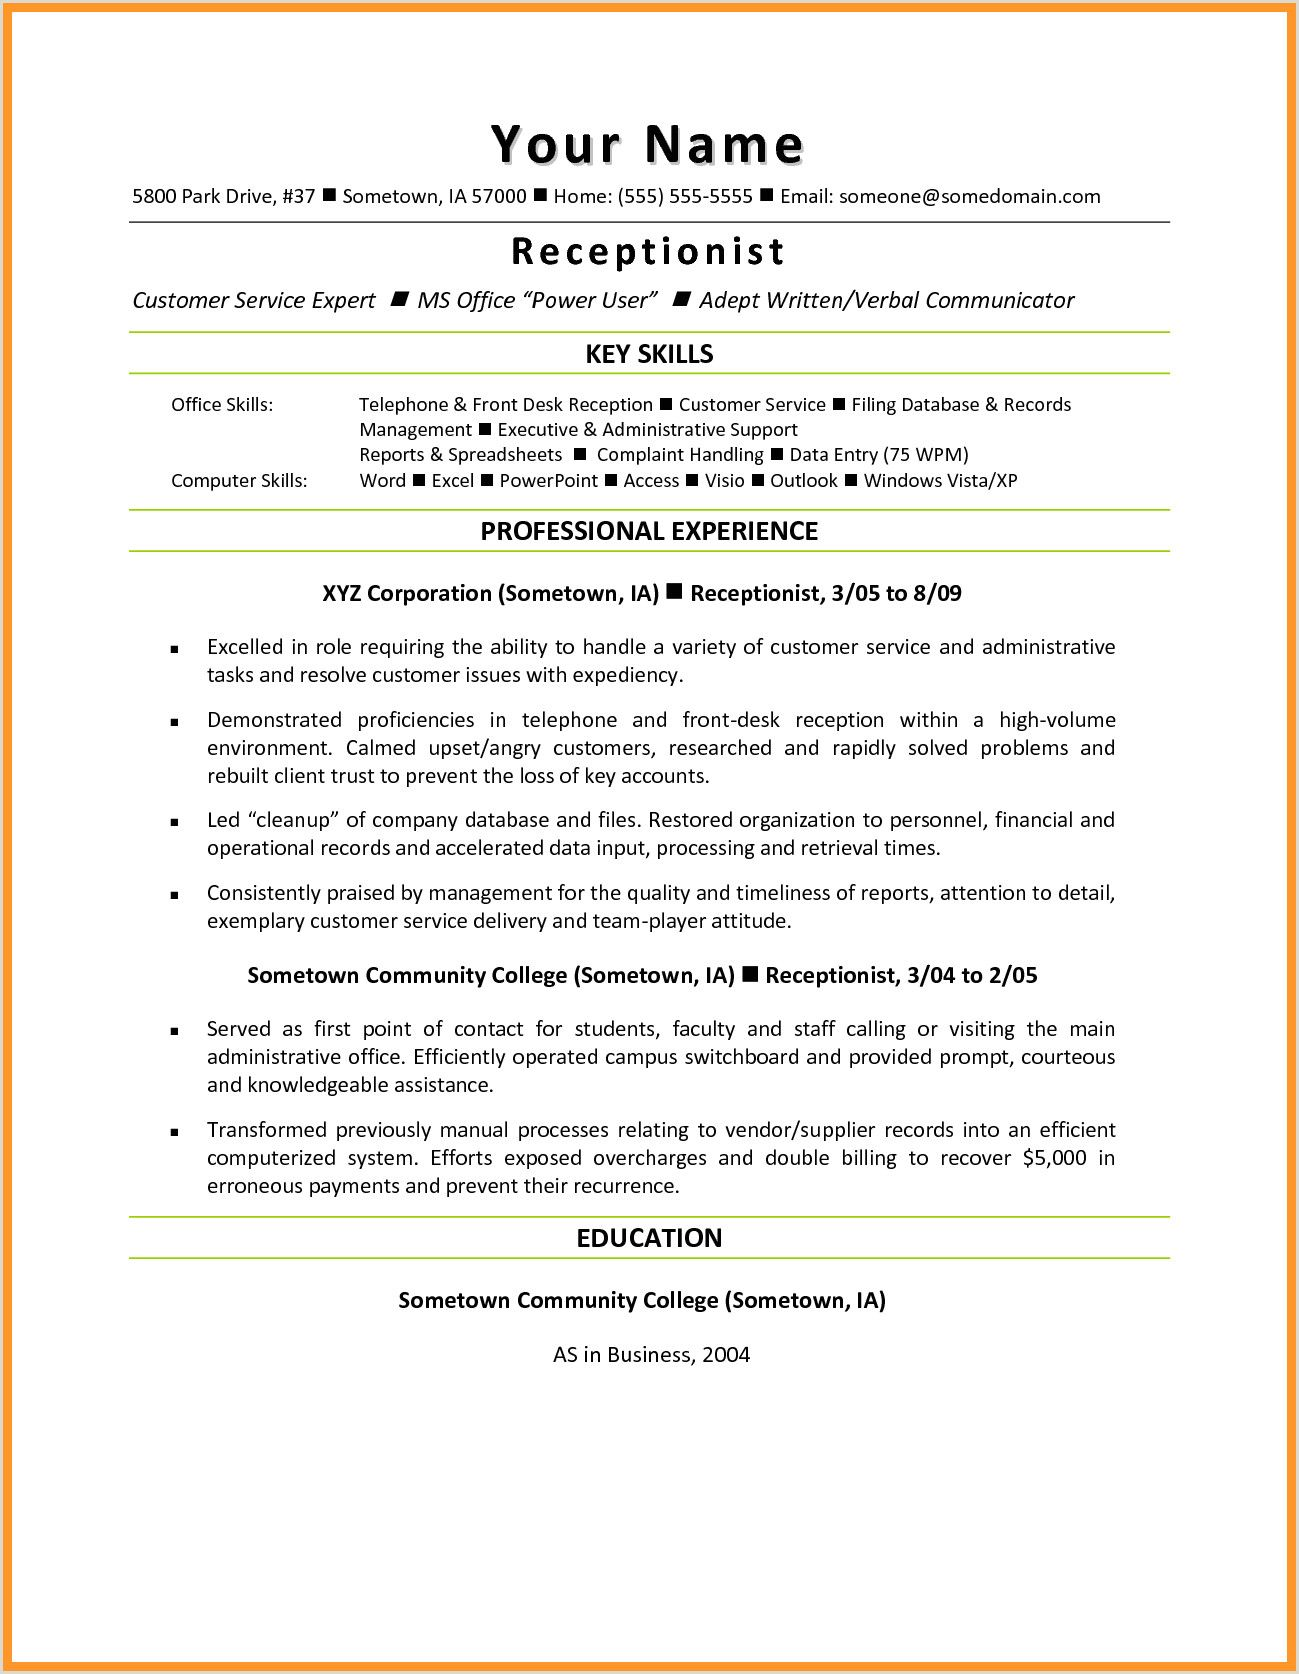 Resume For Front Desk Receptionist Job Resume Samples Receptionist Jobs Medical Receptionist